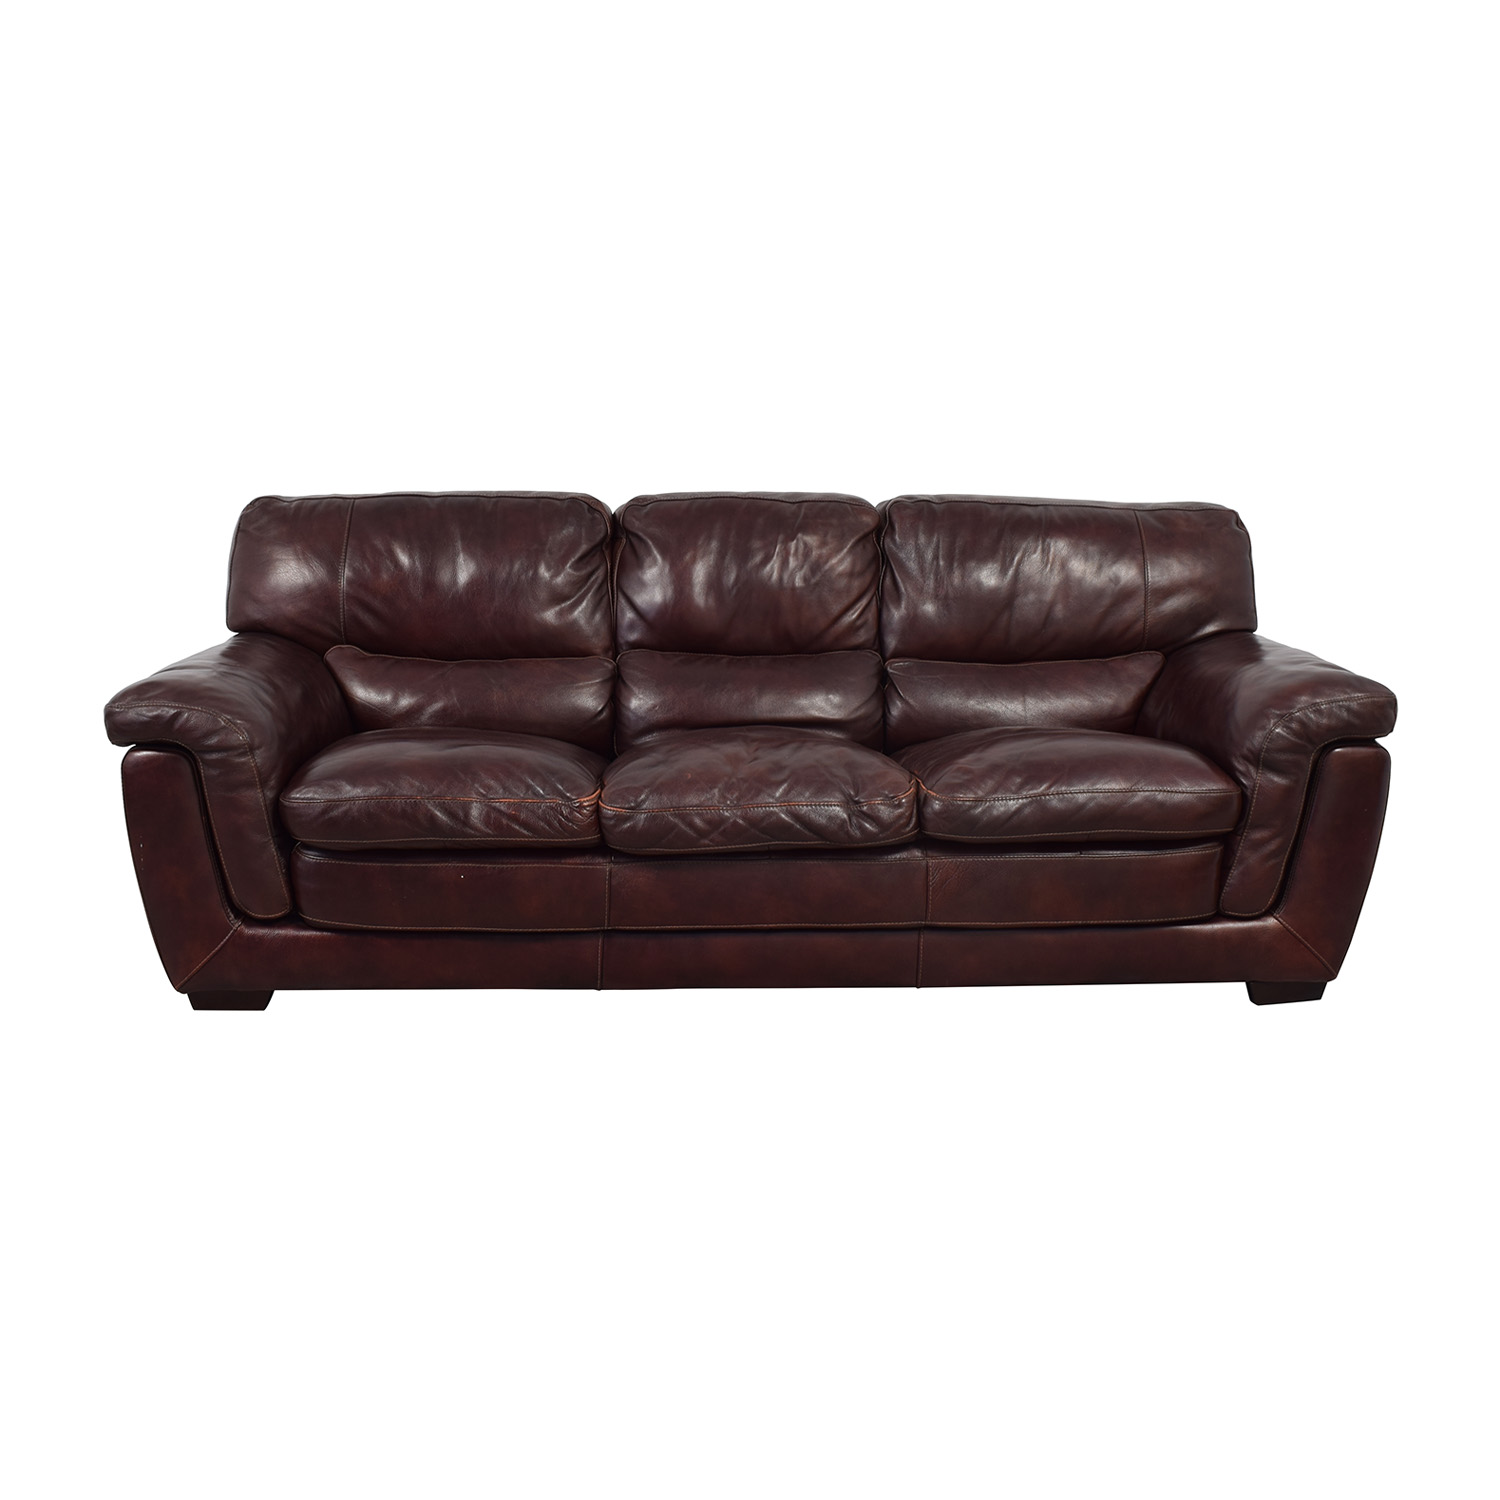 Raymour & Flanigan Raymour & Flanigan Burgundy Leather Three-Cushion Sofa price